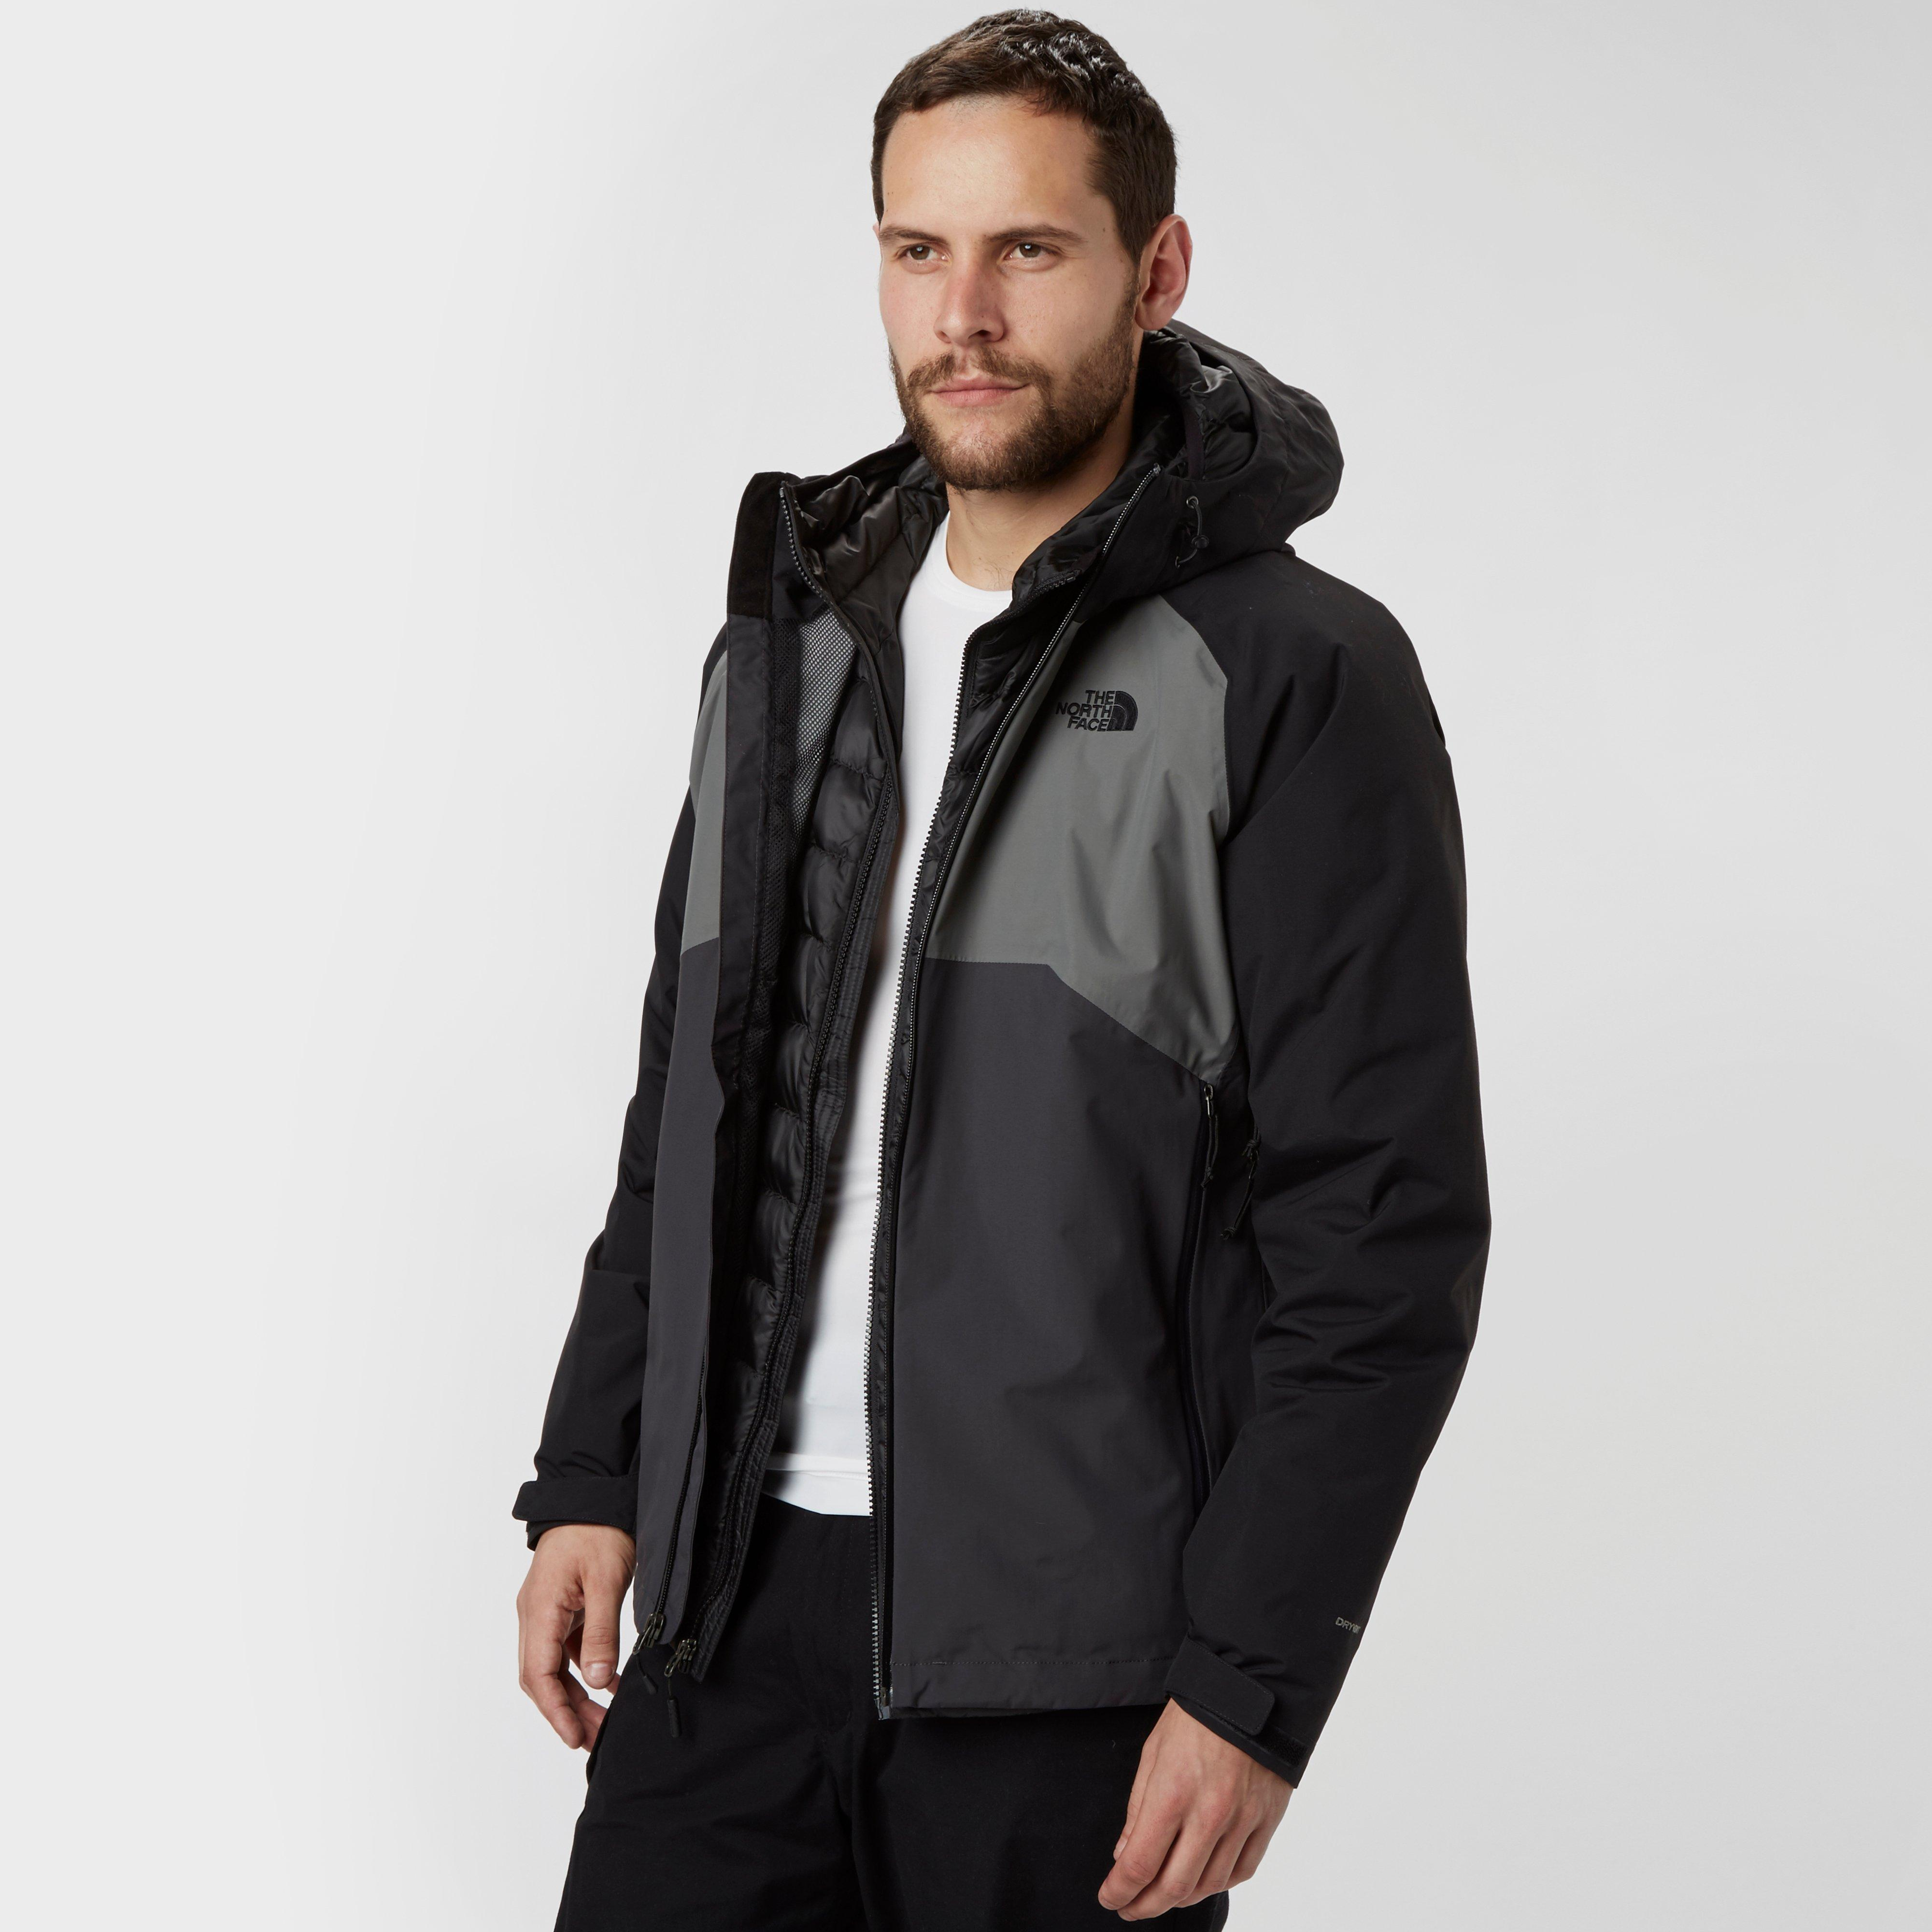 The North Face | XXL | Men&39s | Men&39s Clothing | Jackets &amp Coats